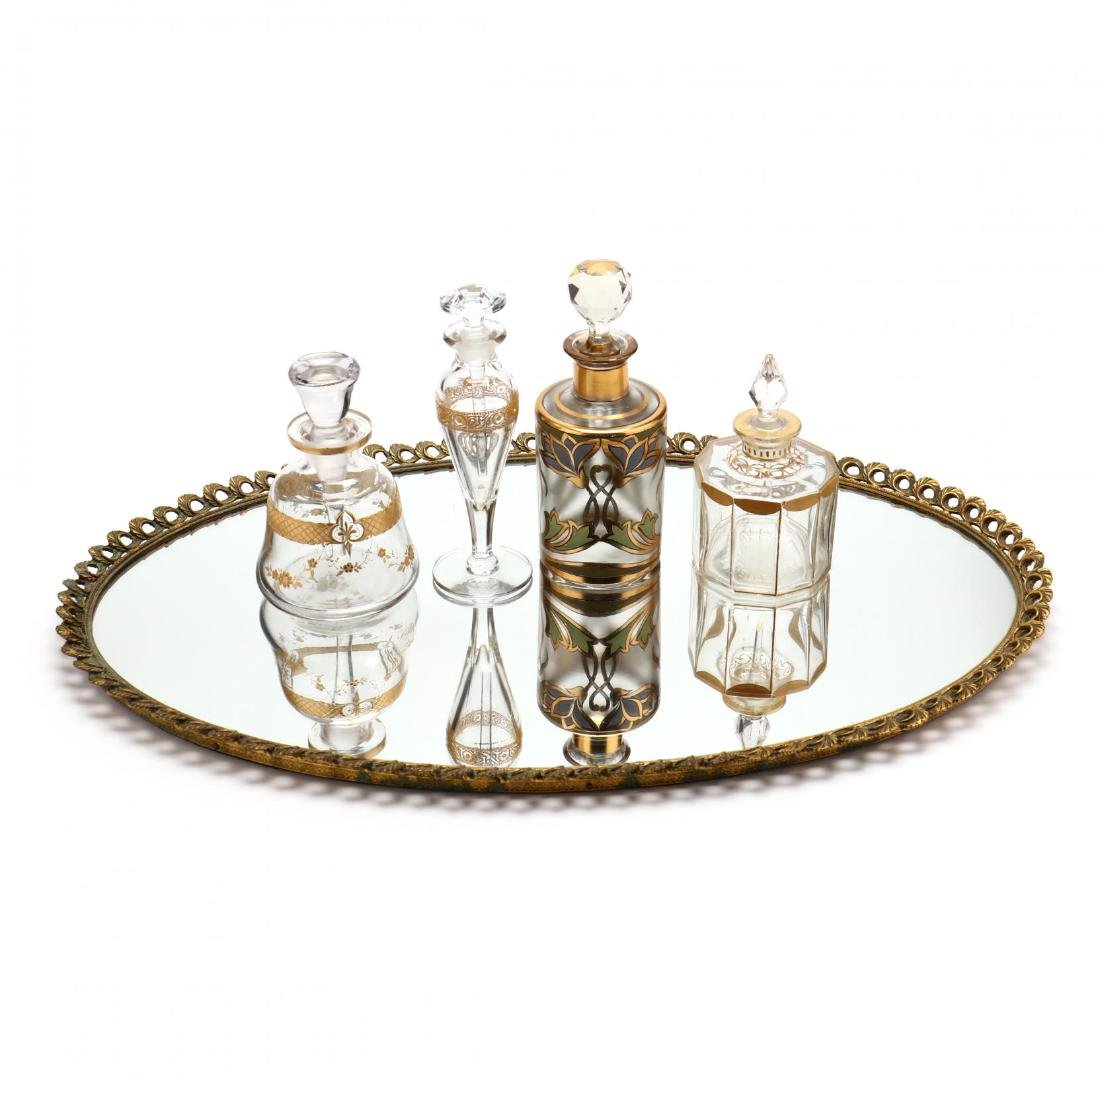 A Vintage Vanity Tray and Four Antique Scent Bottles - 2